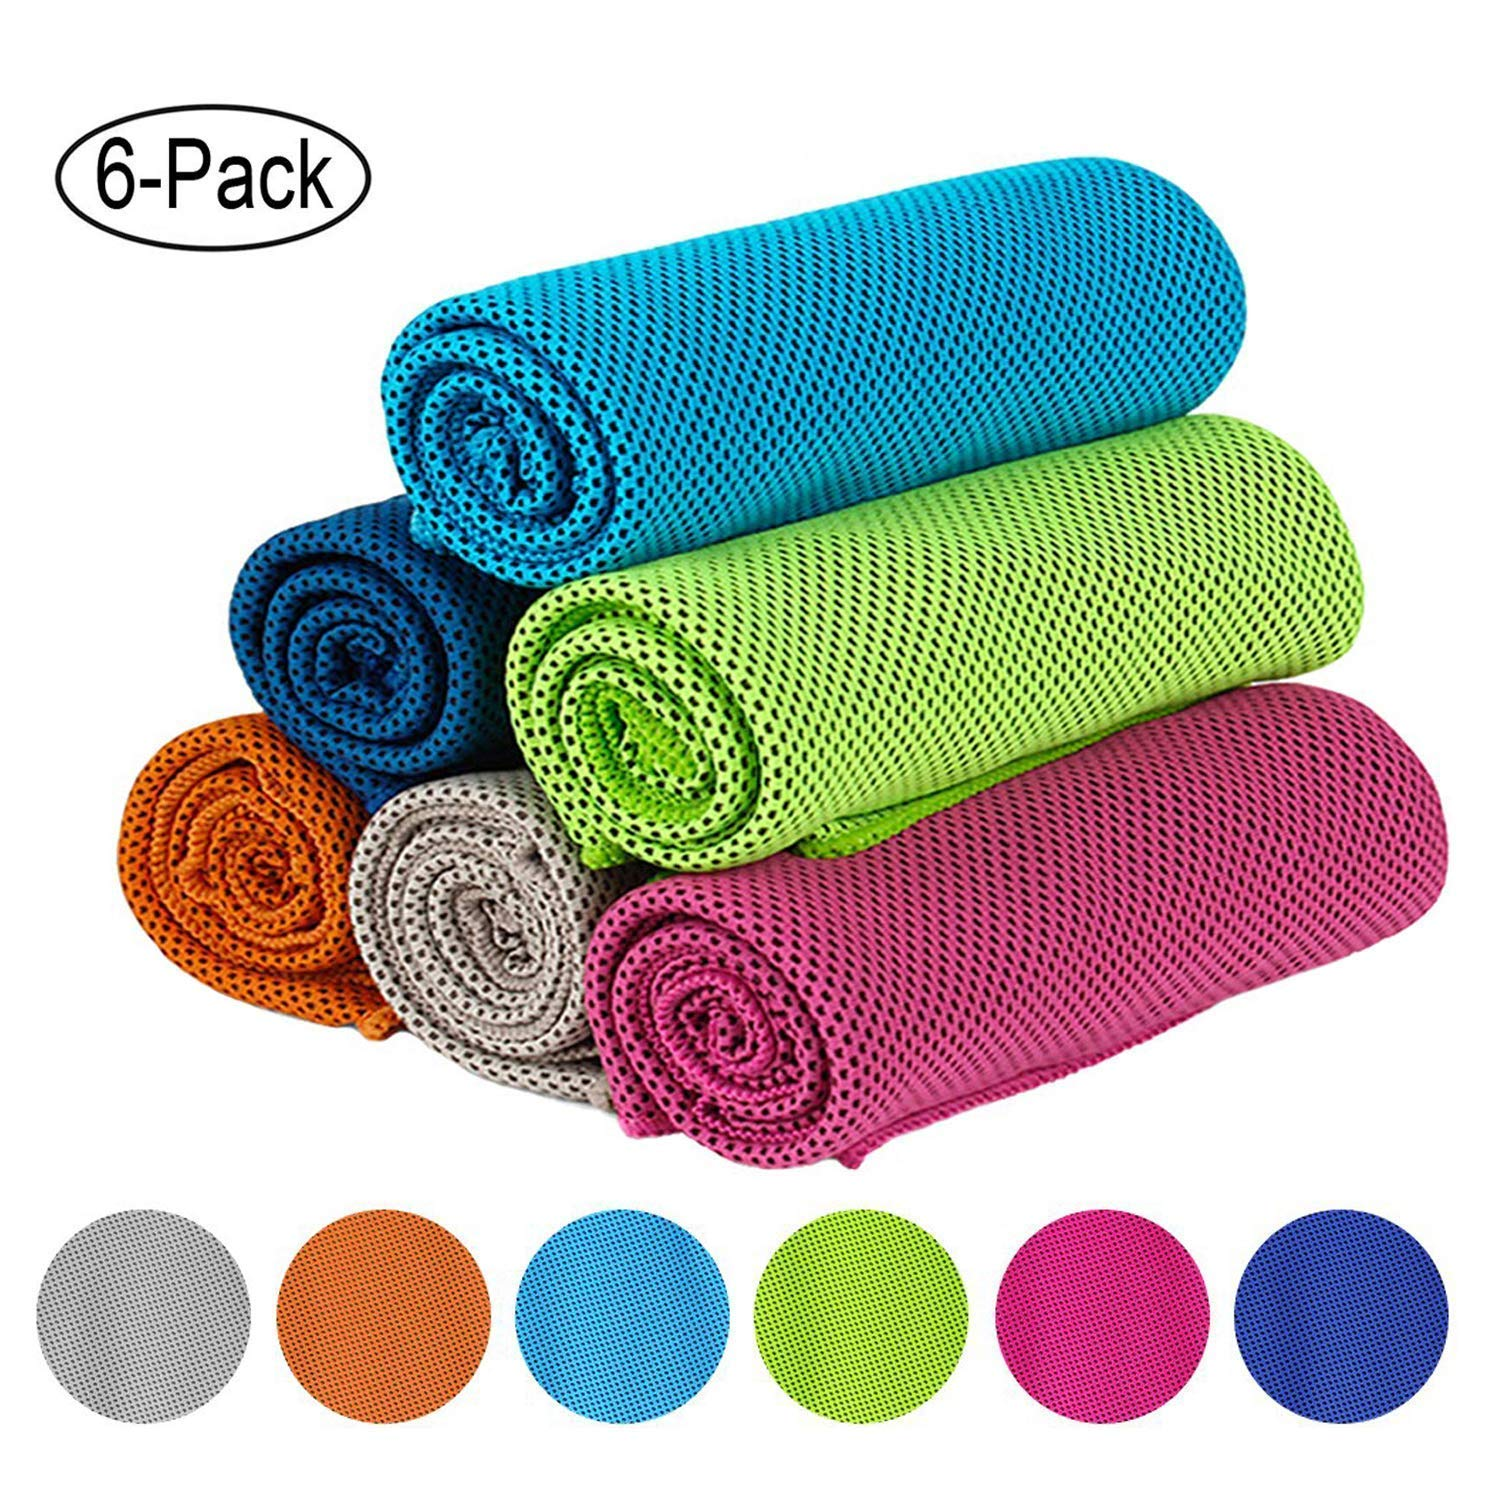 KEAFOLS Cooling Towel 6 Pack